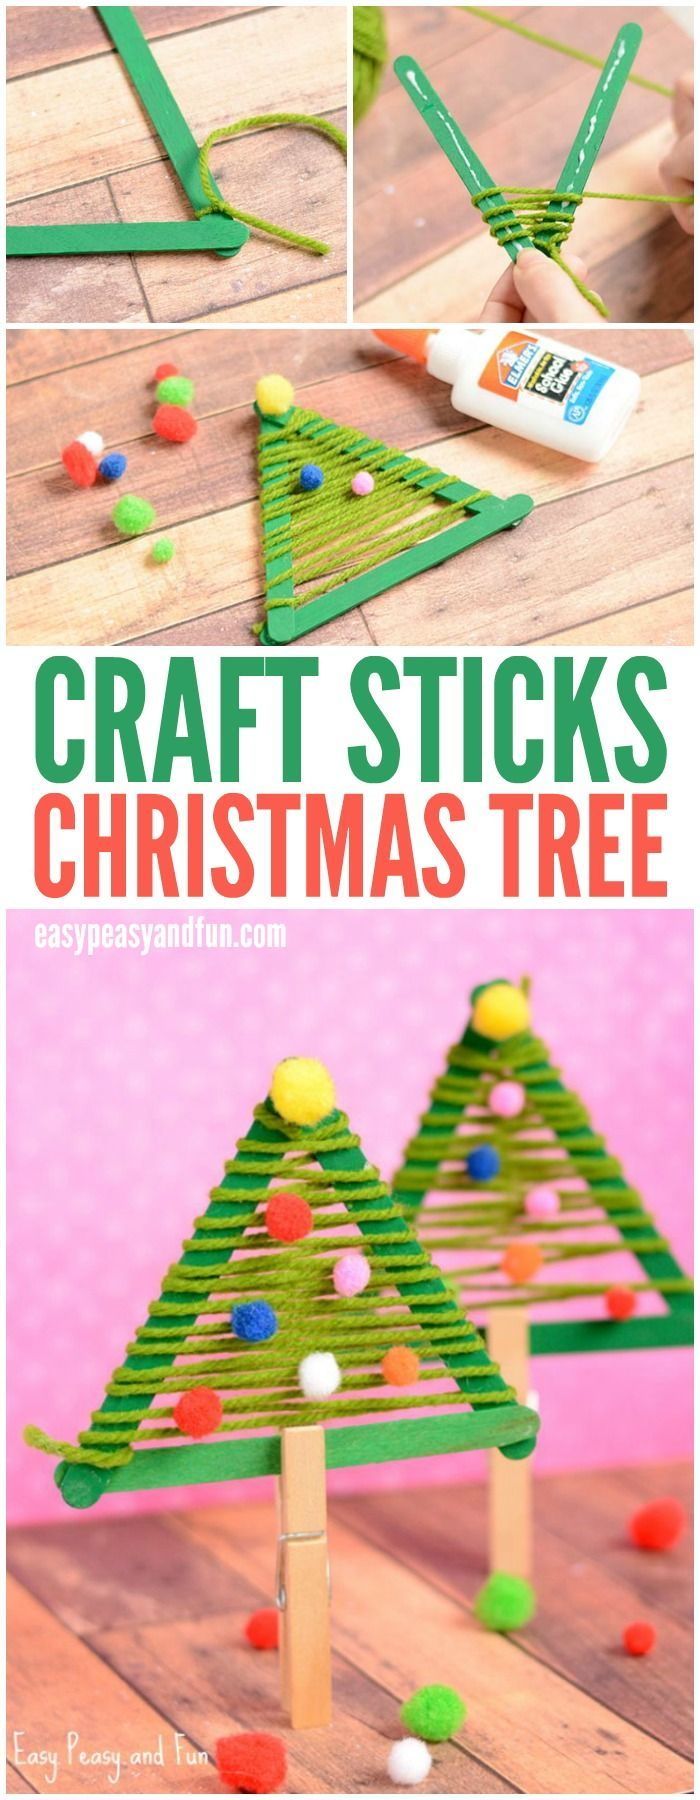 (Note: Add the step of making a loop around each stick when winding, or else may come apart too easily) Great weaving project for preschoolers and kindergartners to make this Christmas!